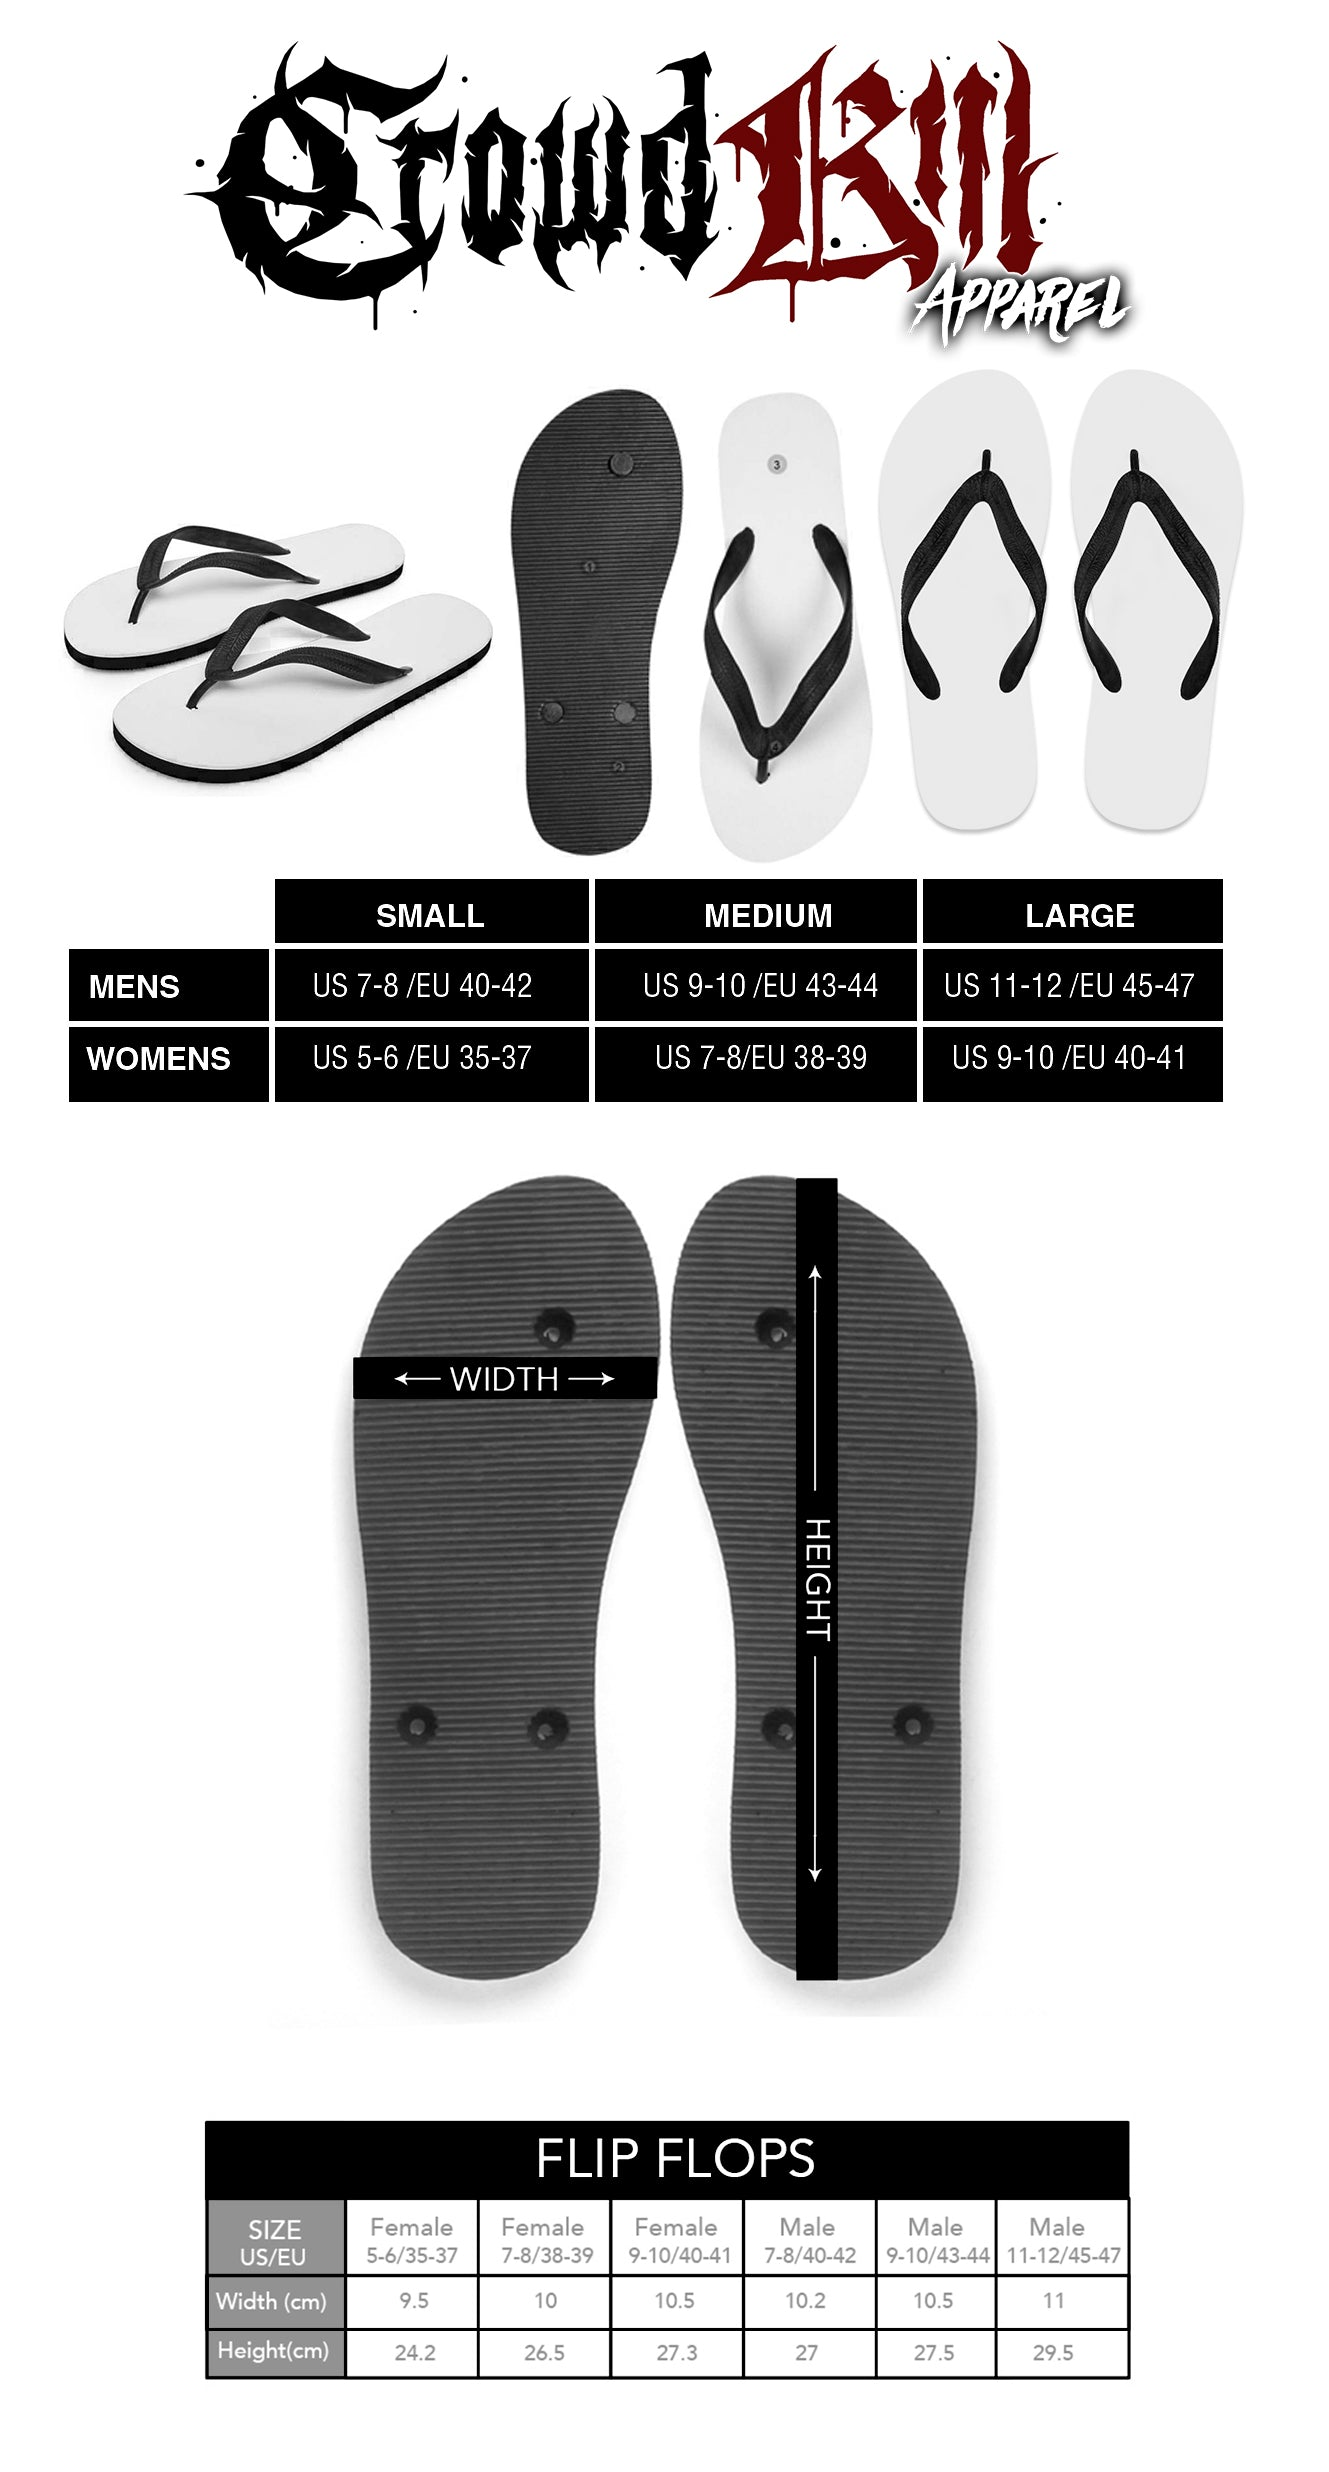 Crowdkill Apparel Flip-Flops Size Guide